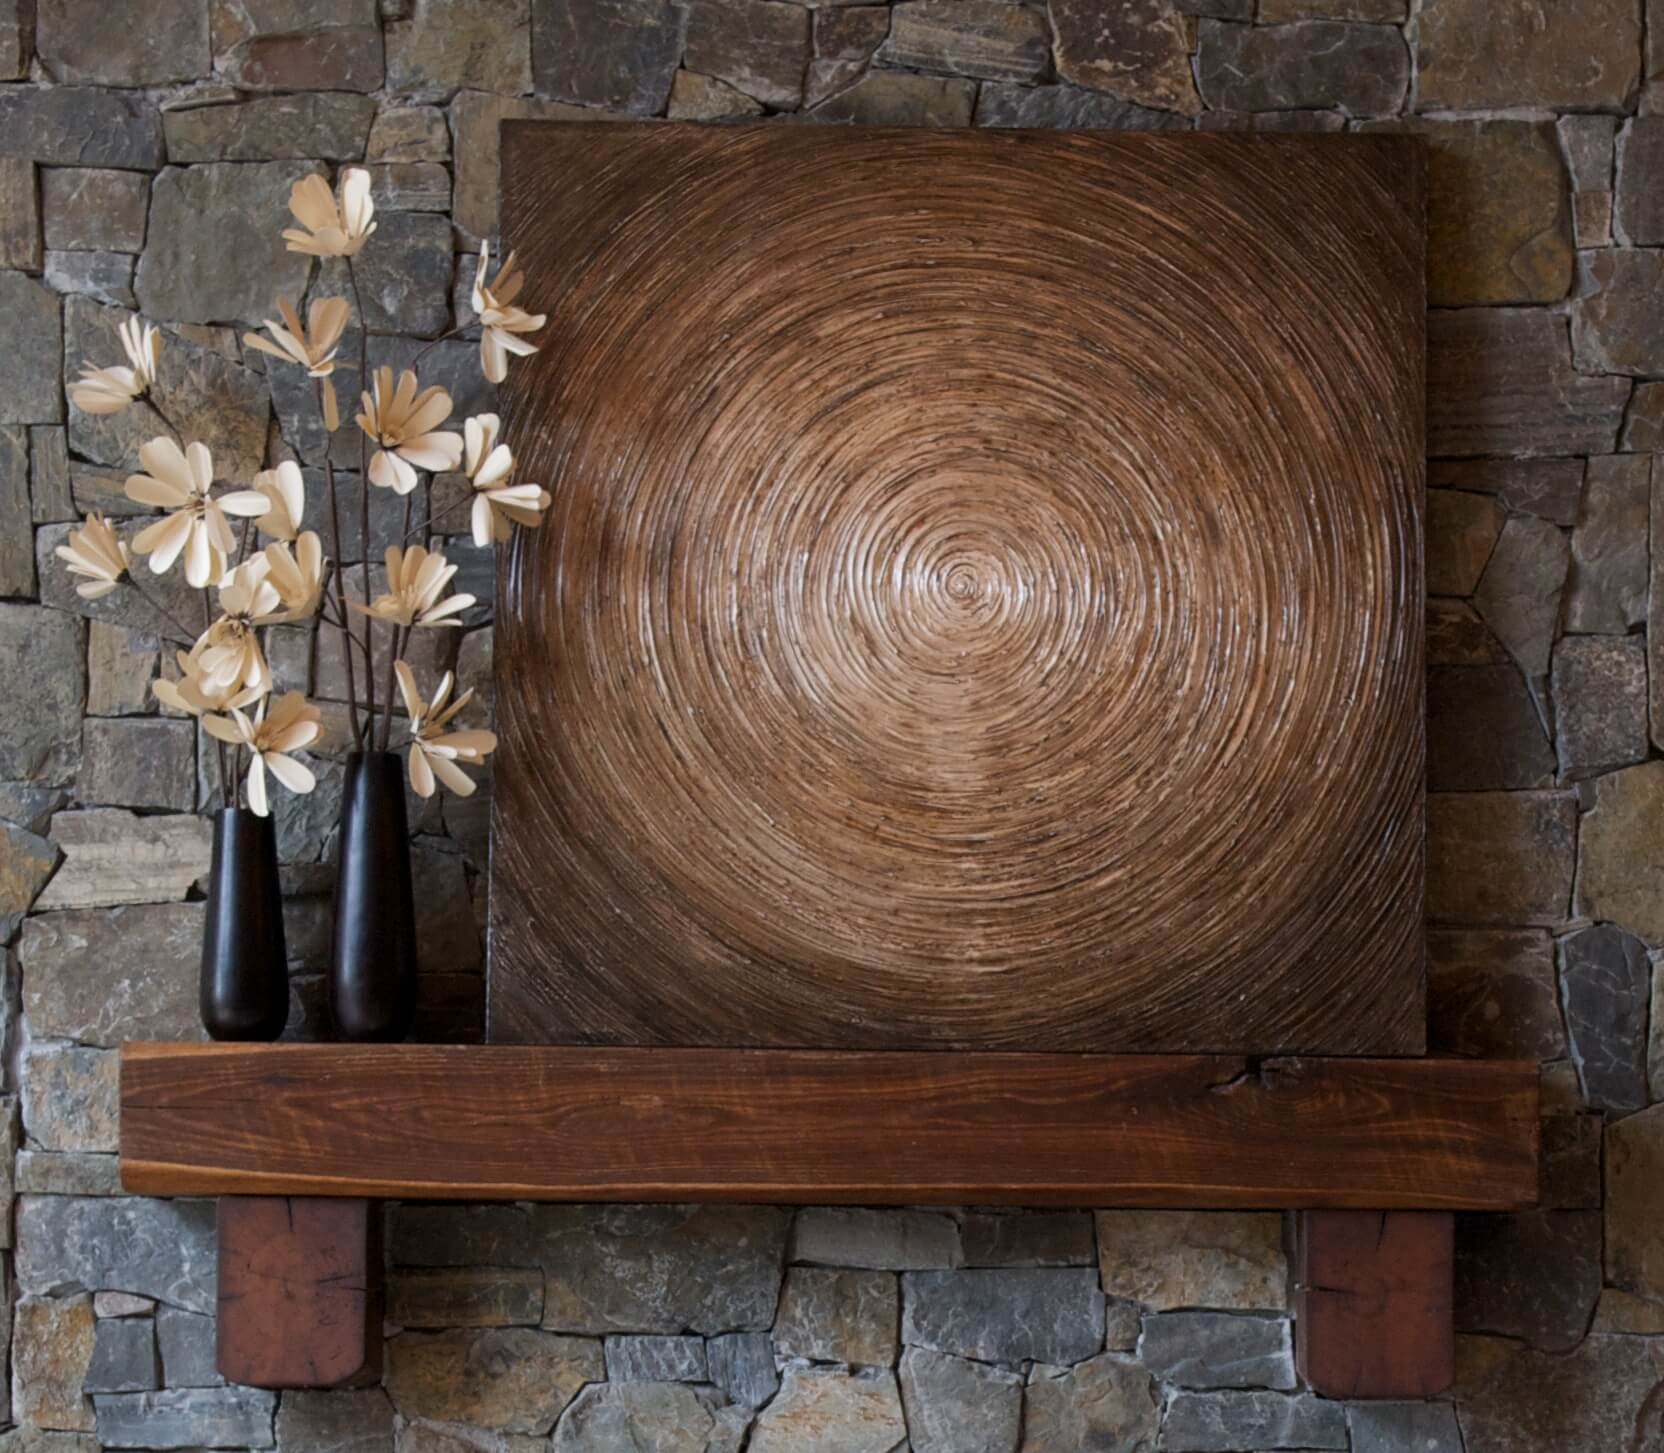 Wood mantle piece holds this unique swirled art piece over ceiling height stone fireplace surround.